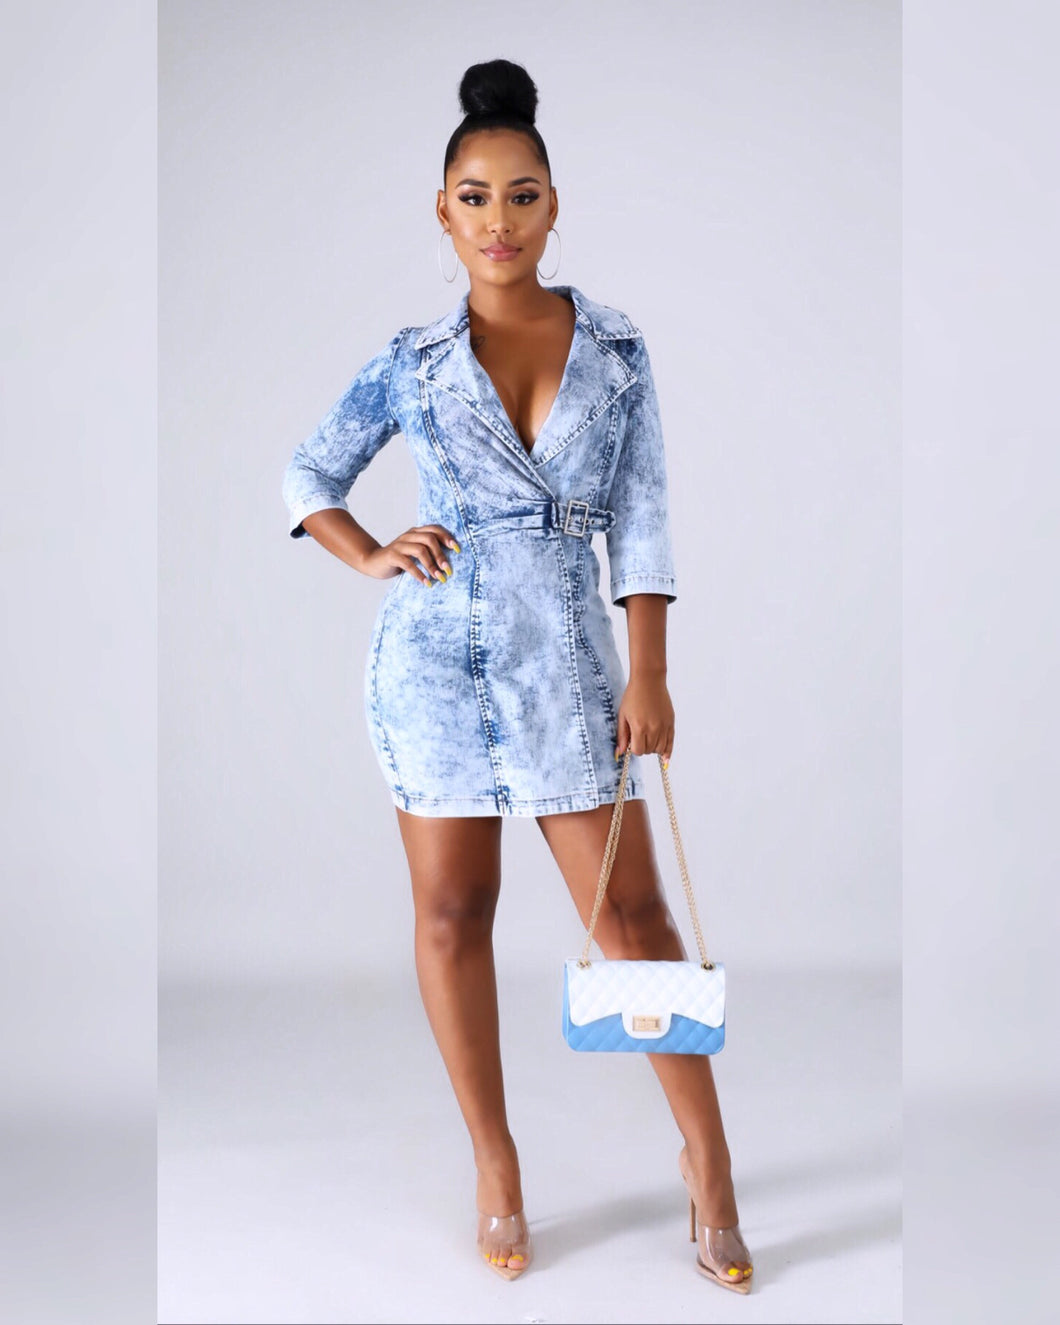 Bombshell Rustic Mini Denim Dress